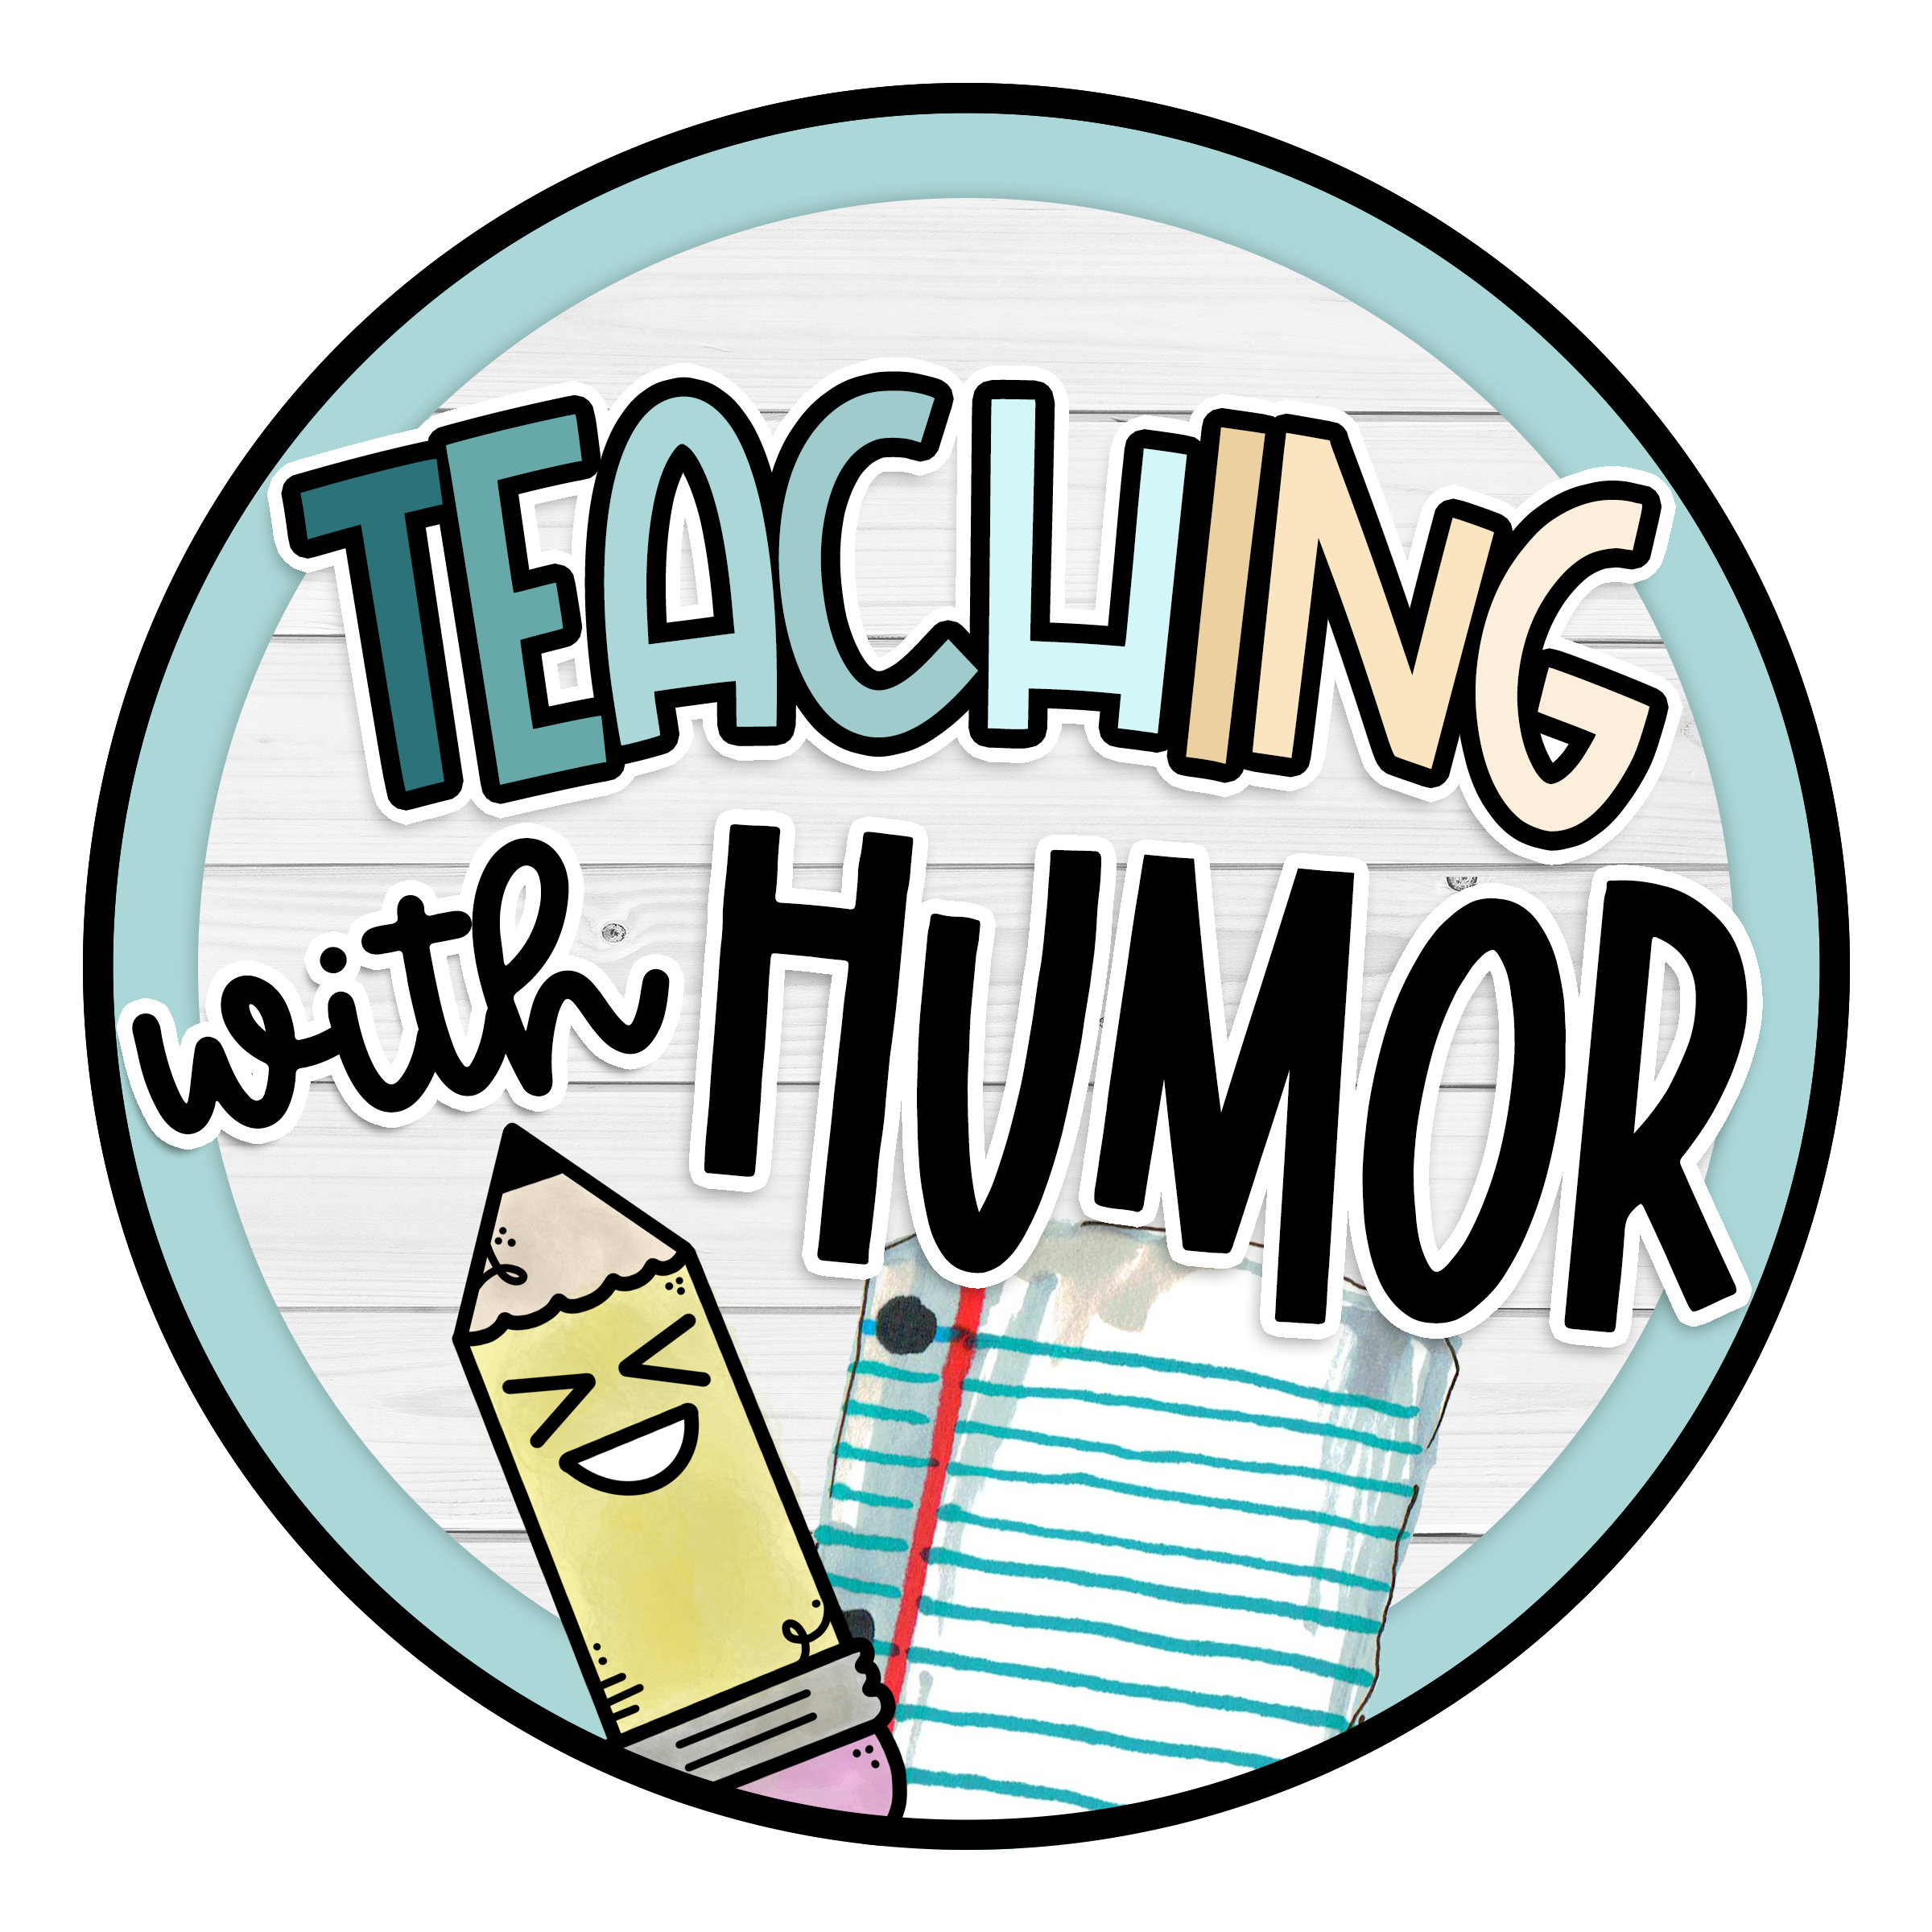 teachingwithhumorlogo-transparent.png